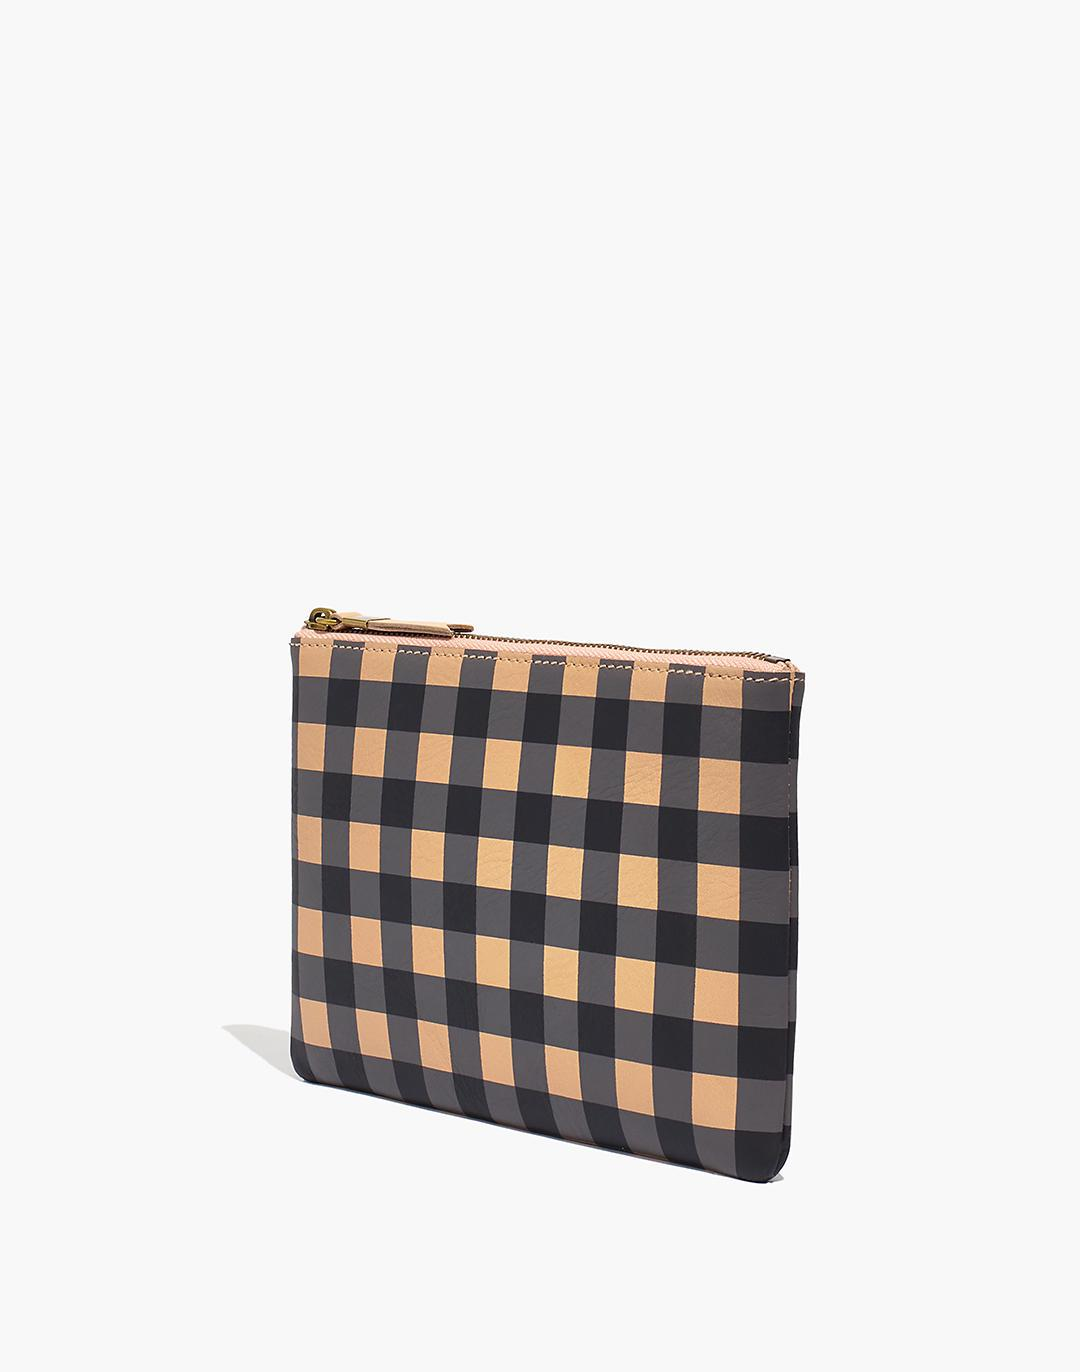 The Leather Pouch Clutch: Gingham Edition 2